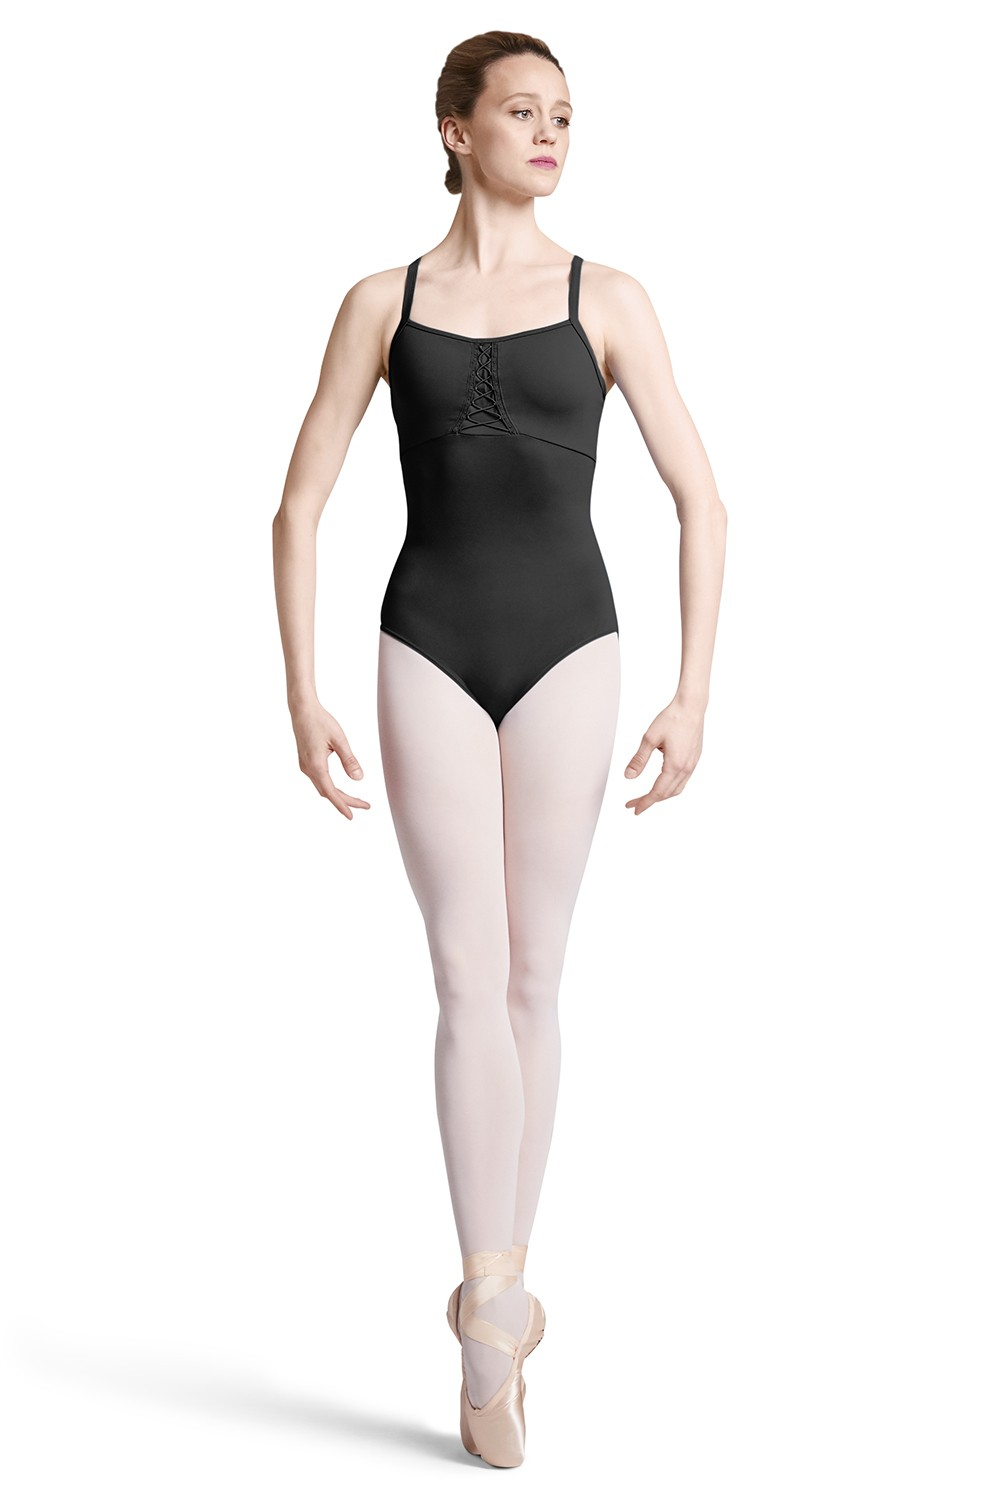 Dardanos Women's Dance Leotards